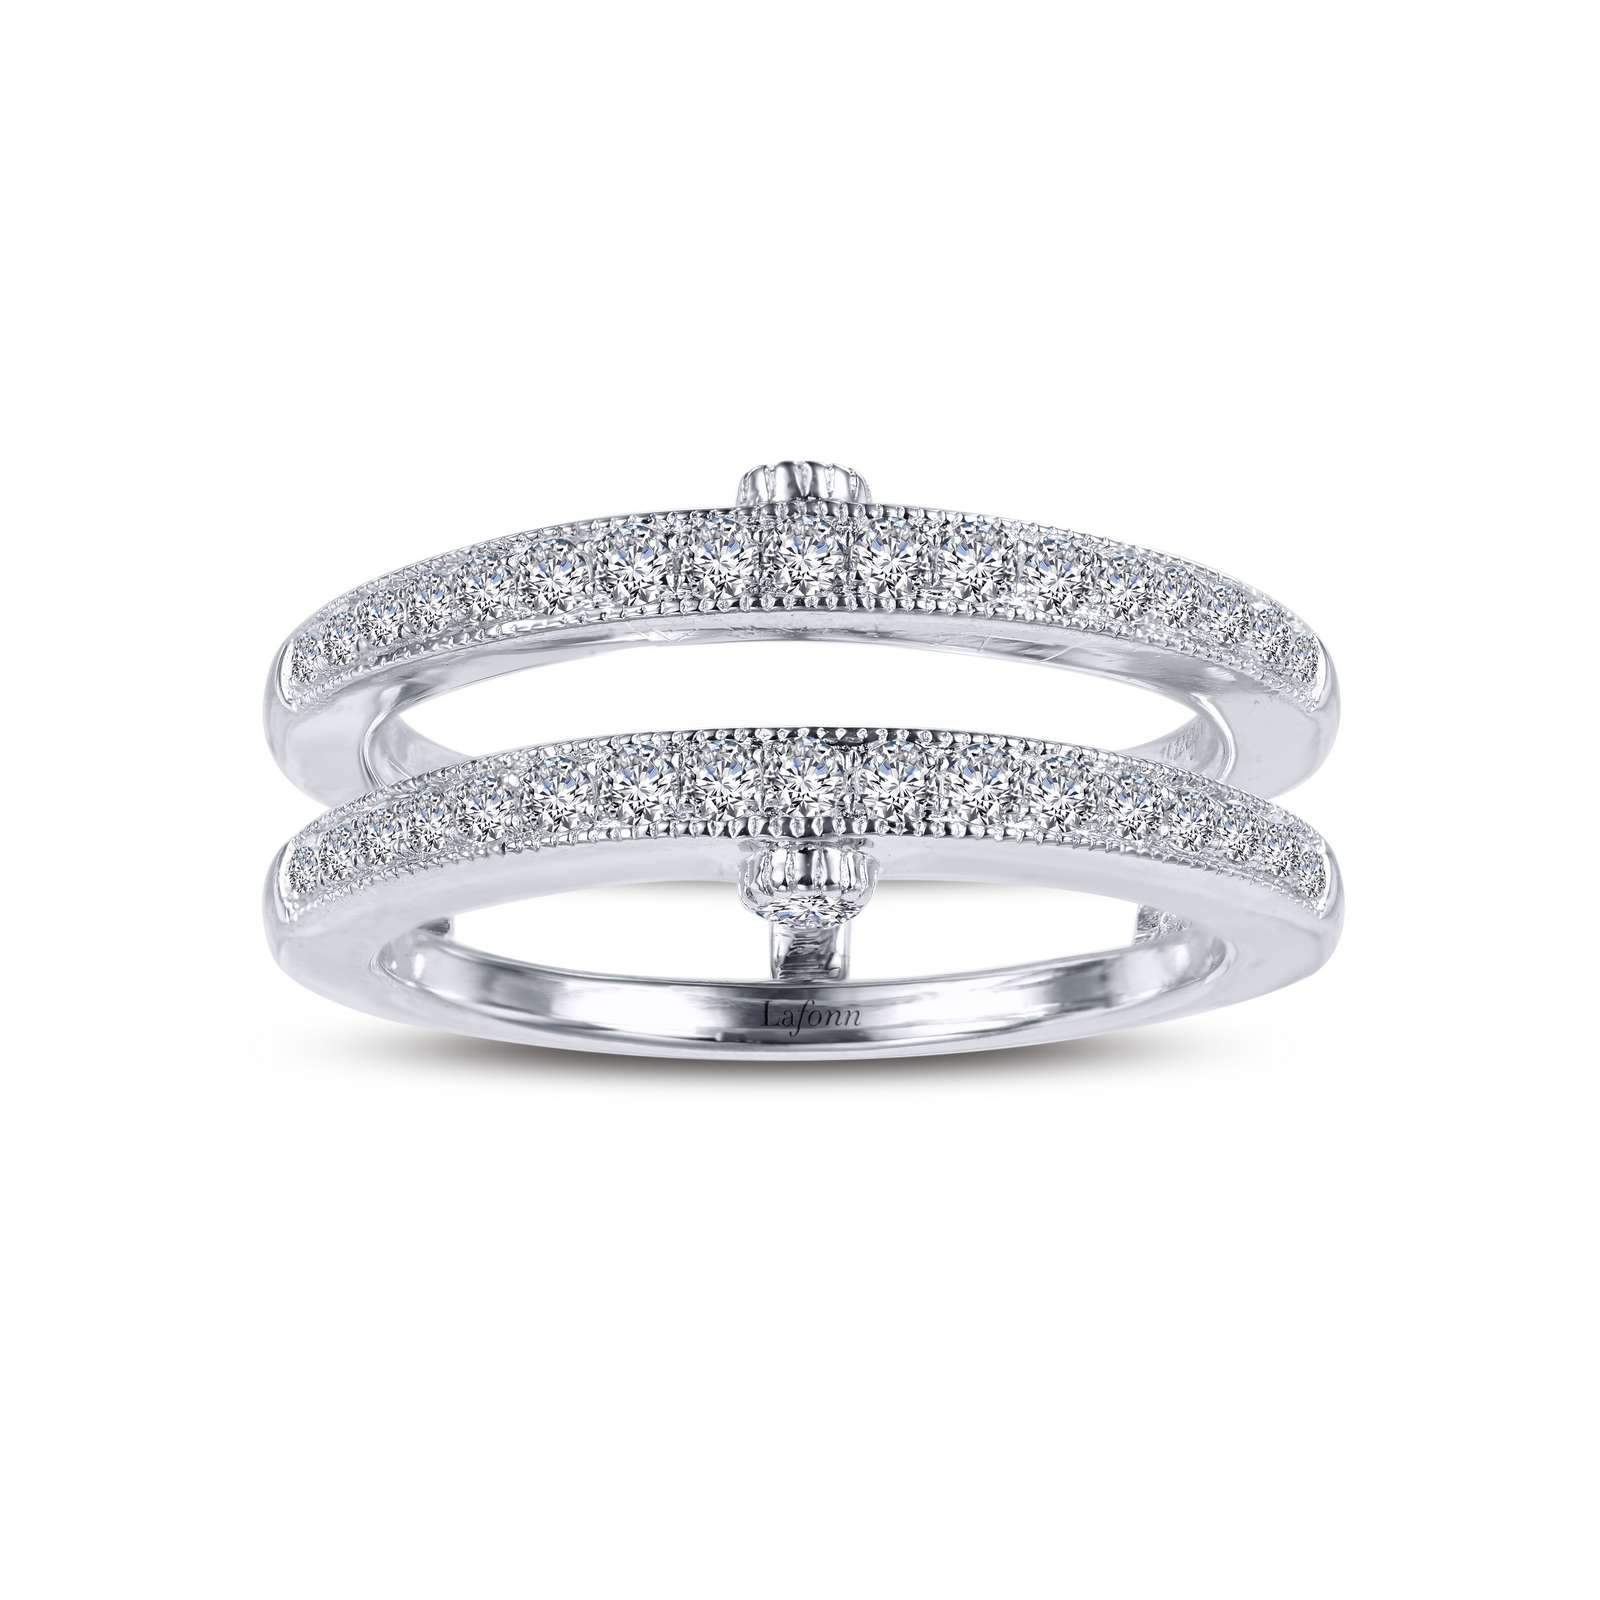 Classic Simulated Diamond Platinum Ring - A versatile addition to your collection. Wear this ring enhancer with an engagement ring or a band, or add a chain and wear it as a slider pendant. This ring enhancer is set with Lafonn's signature Lassaire simulated diamonds in sterling silver bonded with platinum.